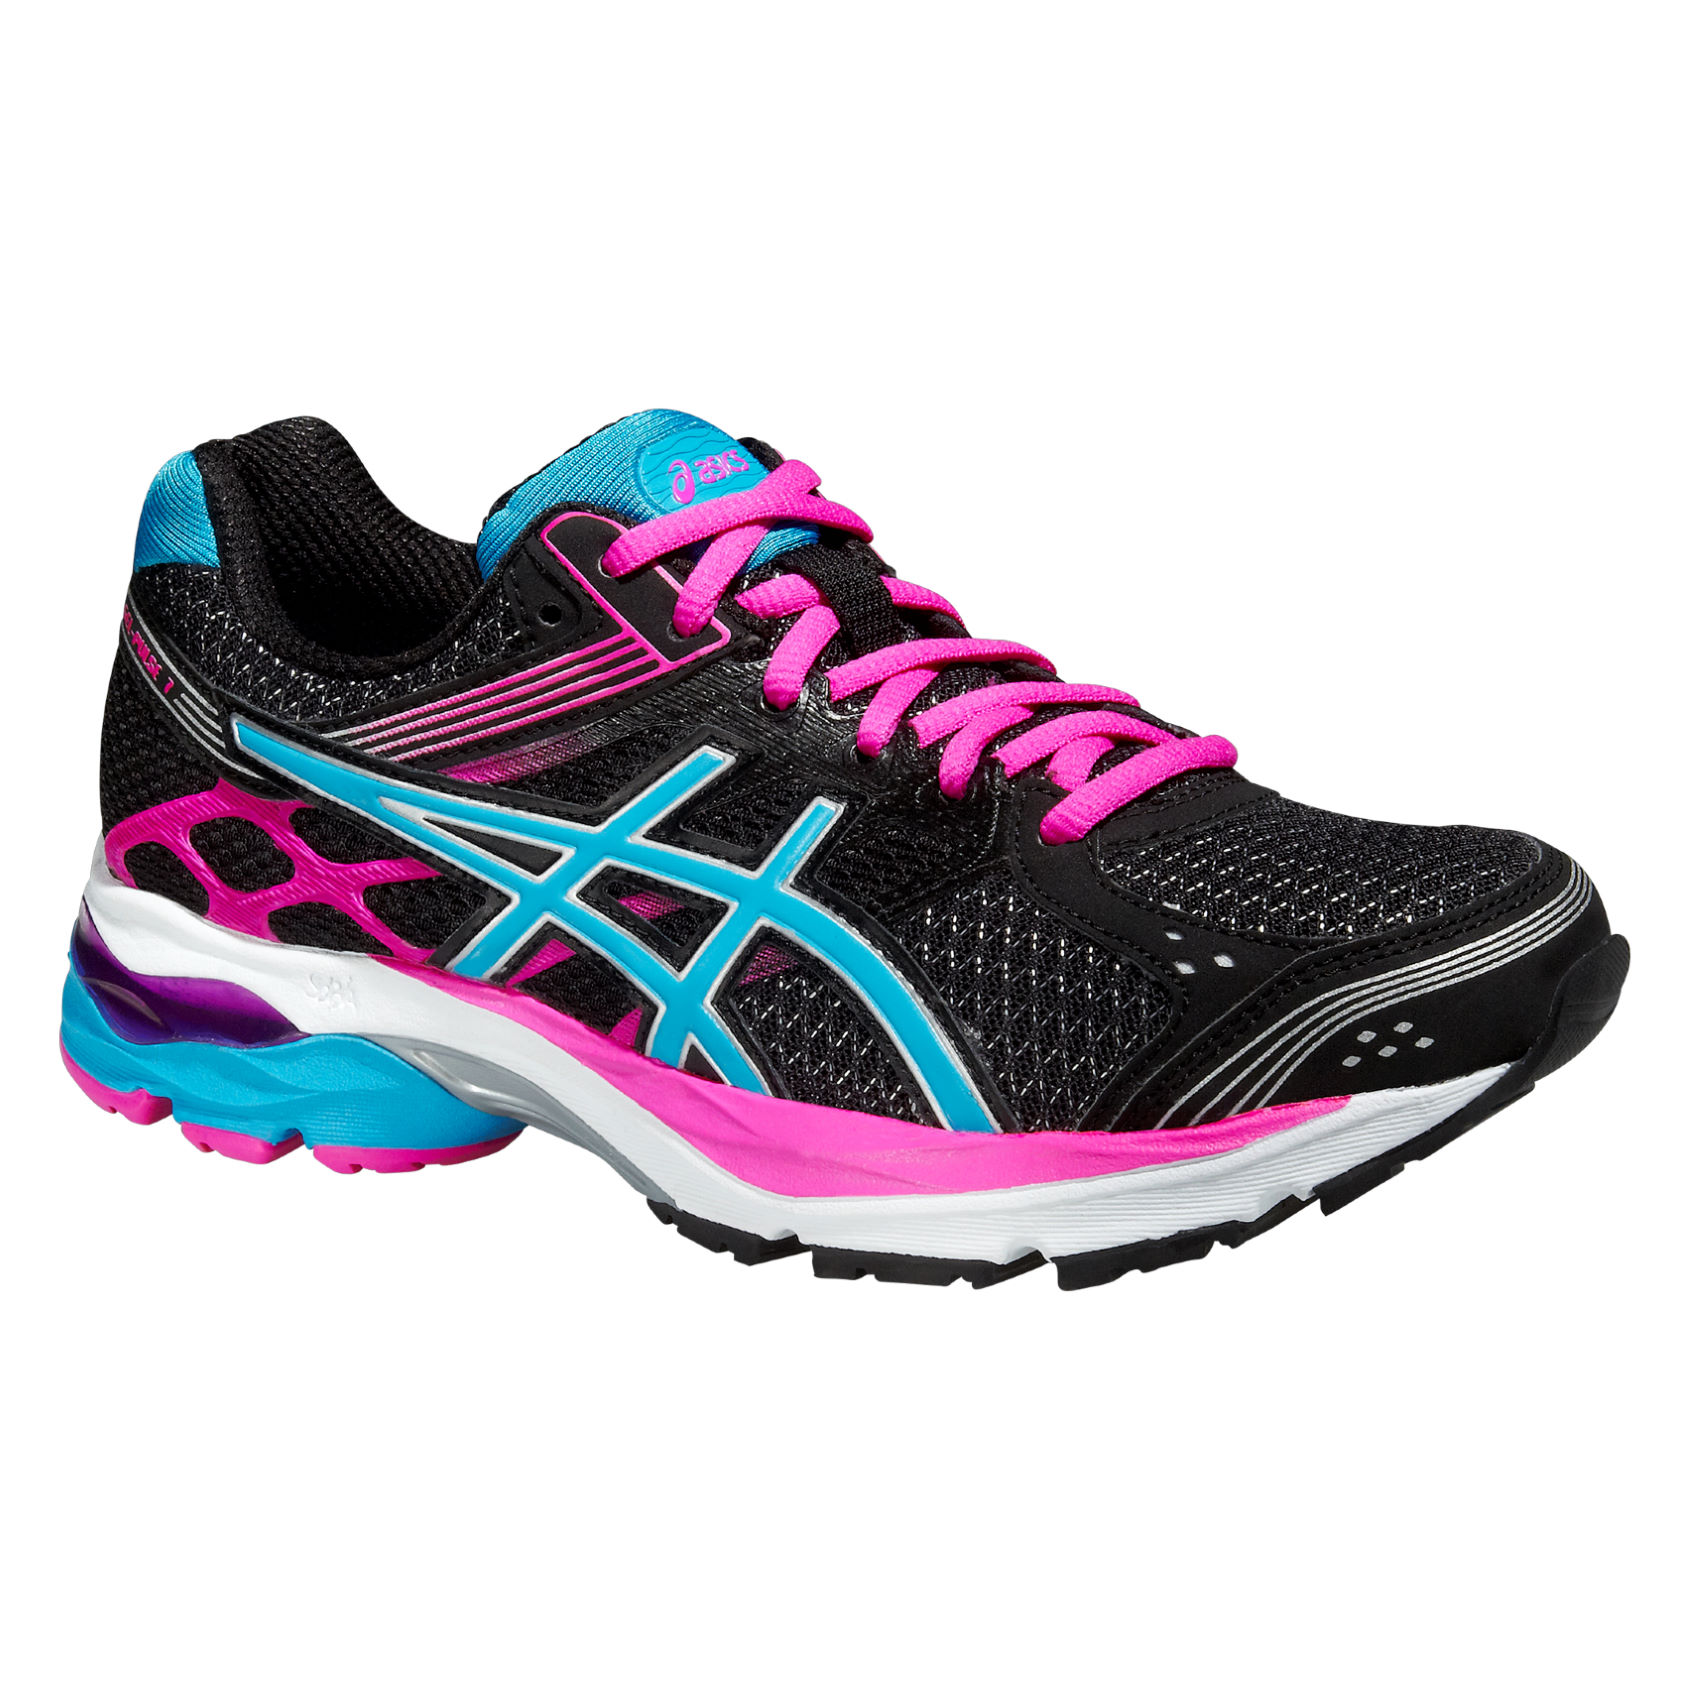 Asics Womens Running Shoes Size